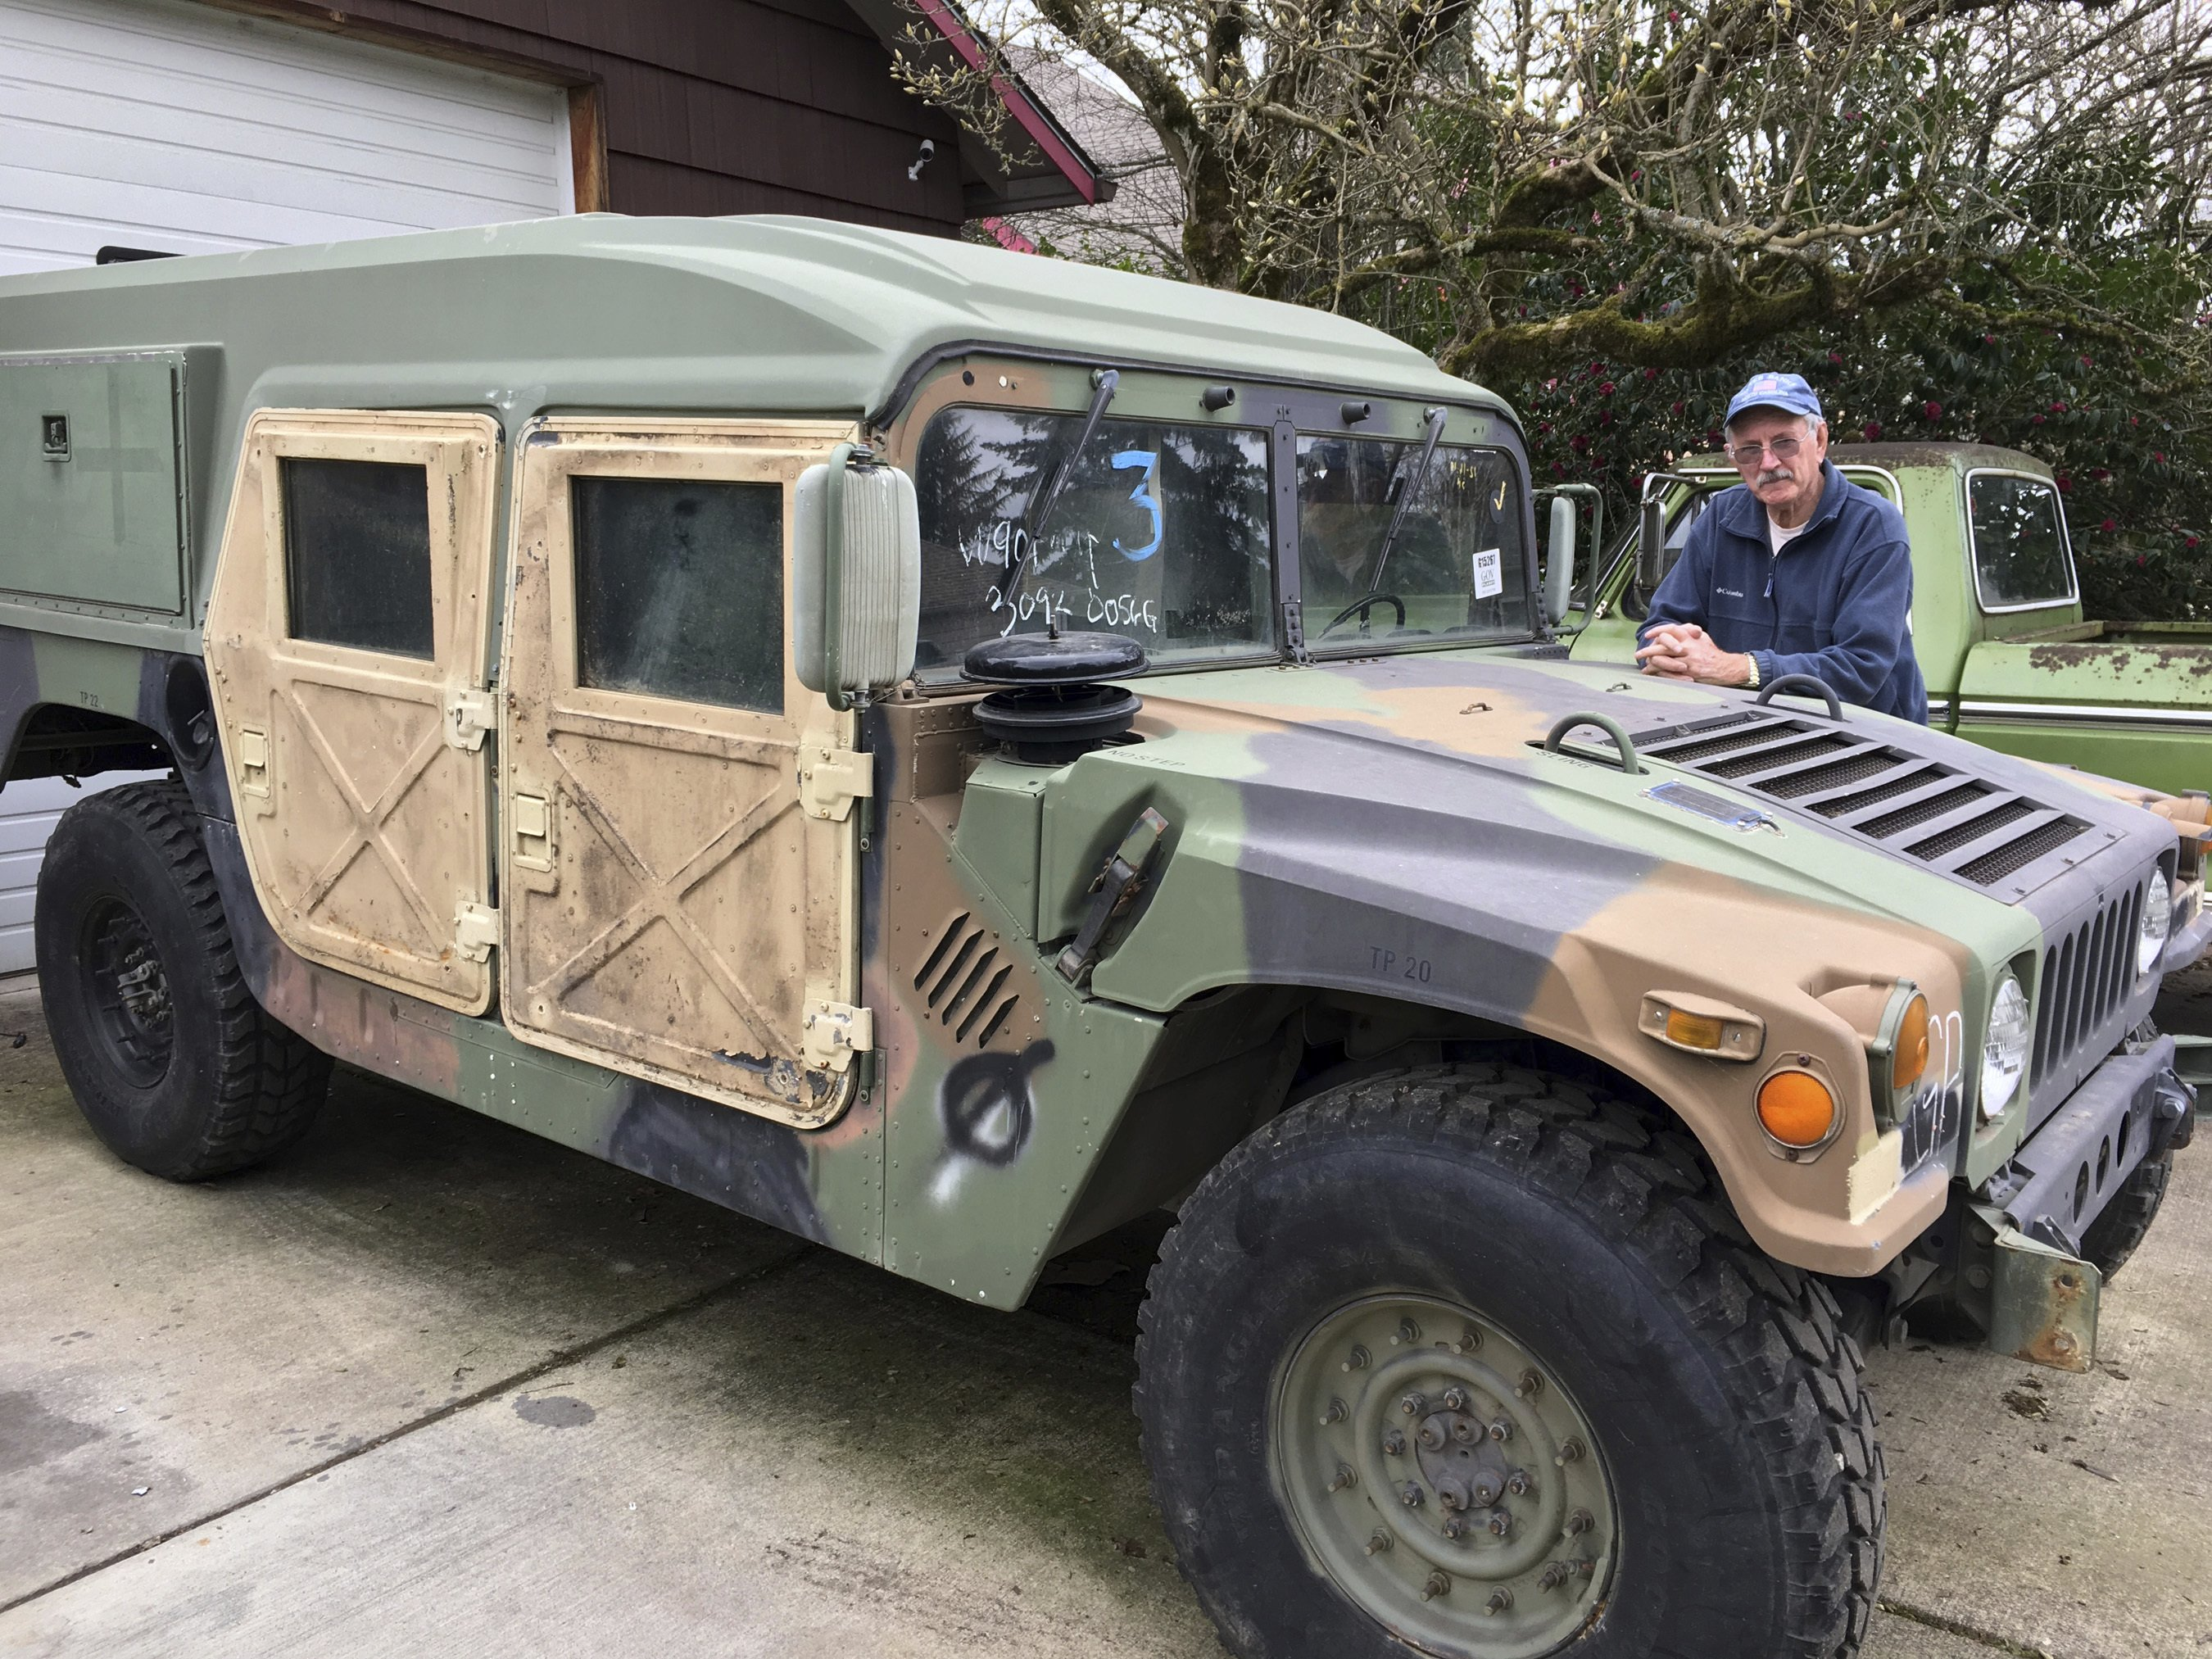 Oregon drivers may share roads with military surplus Humvees   hummer surplus